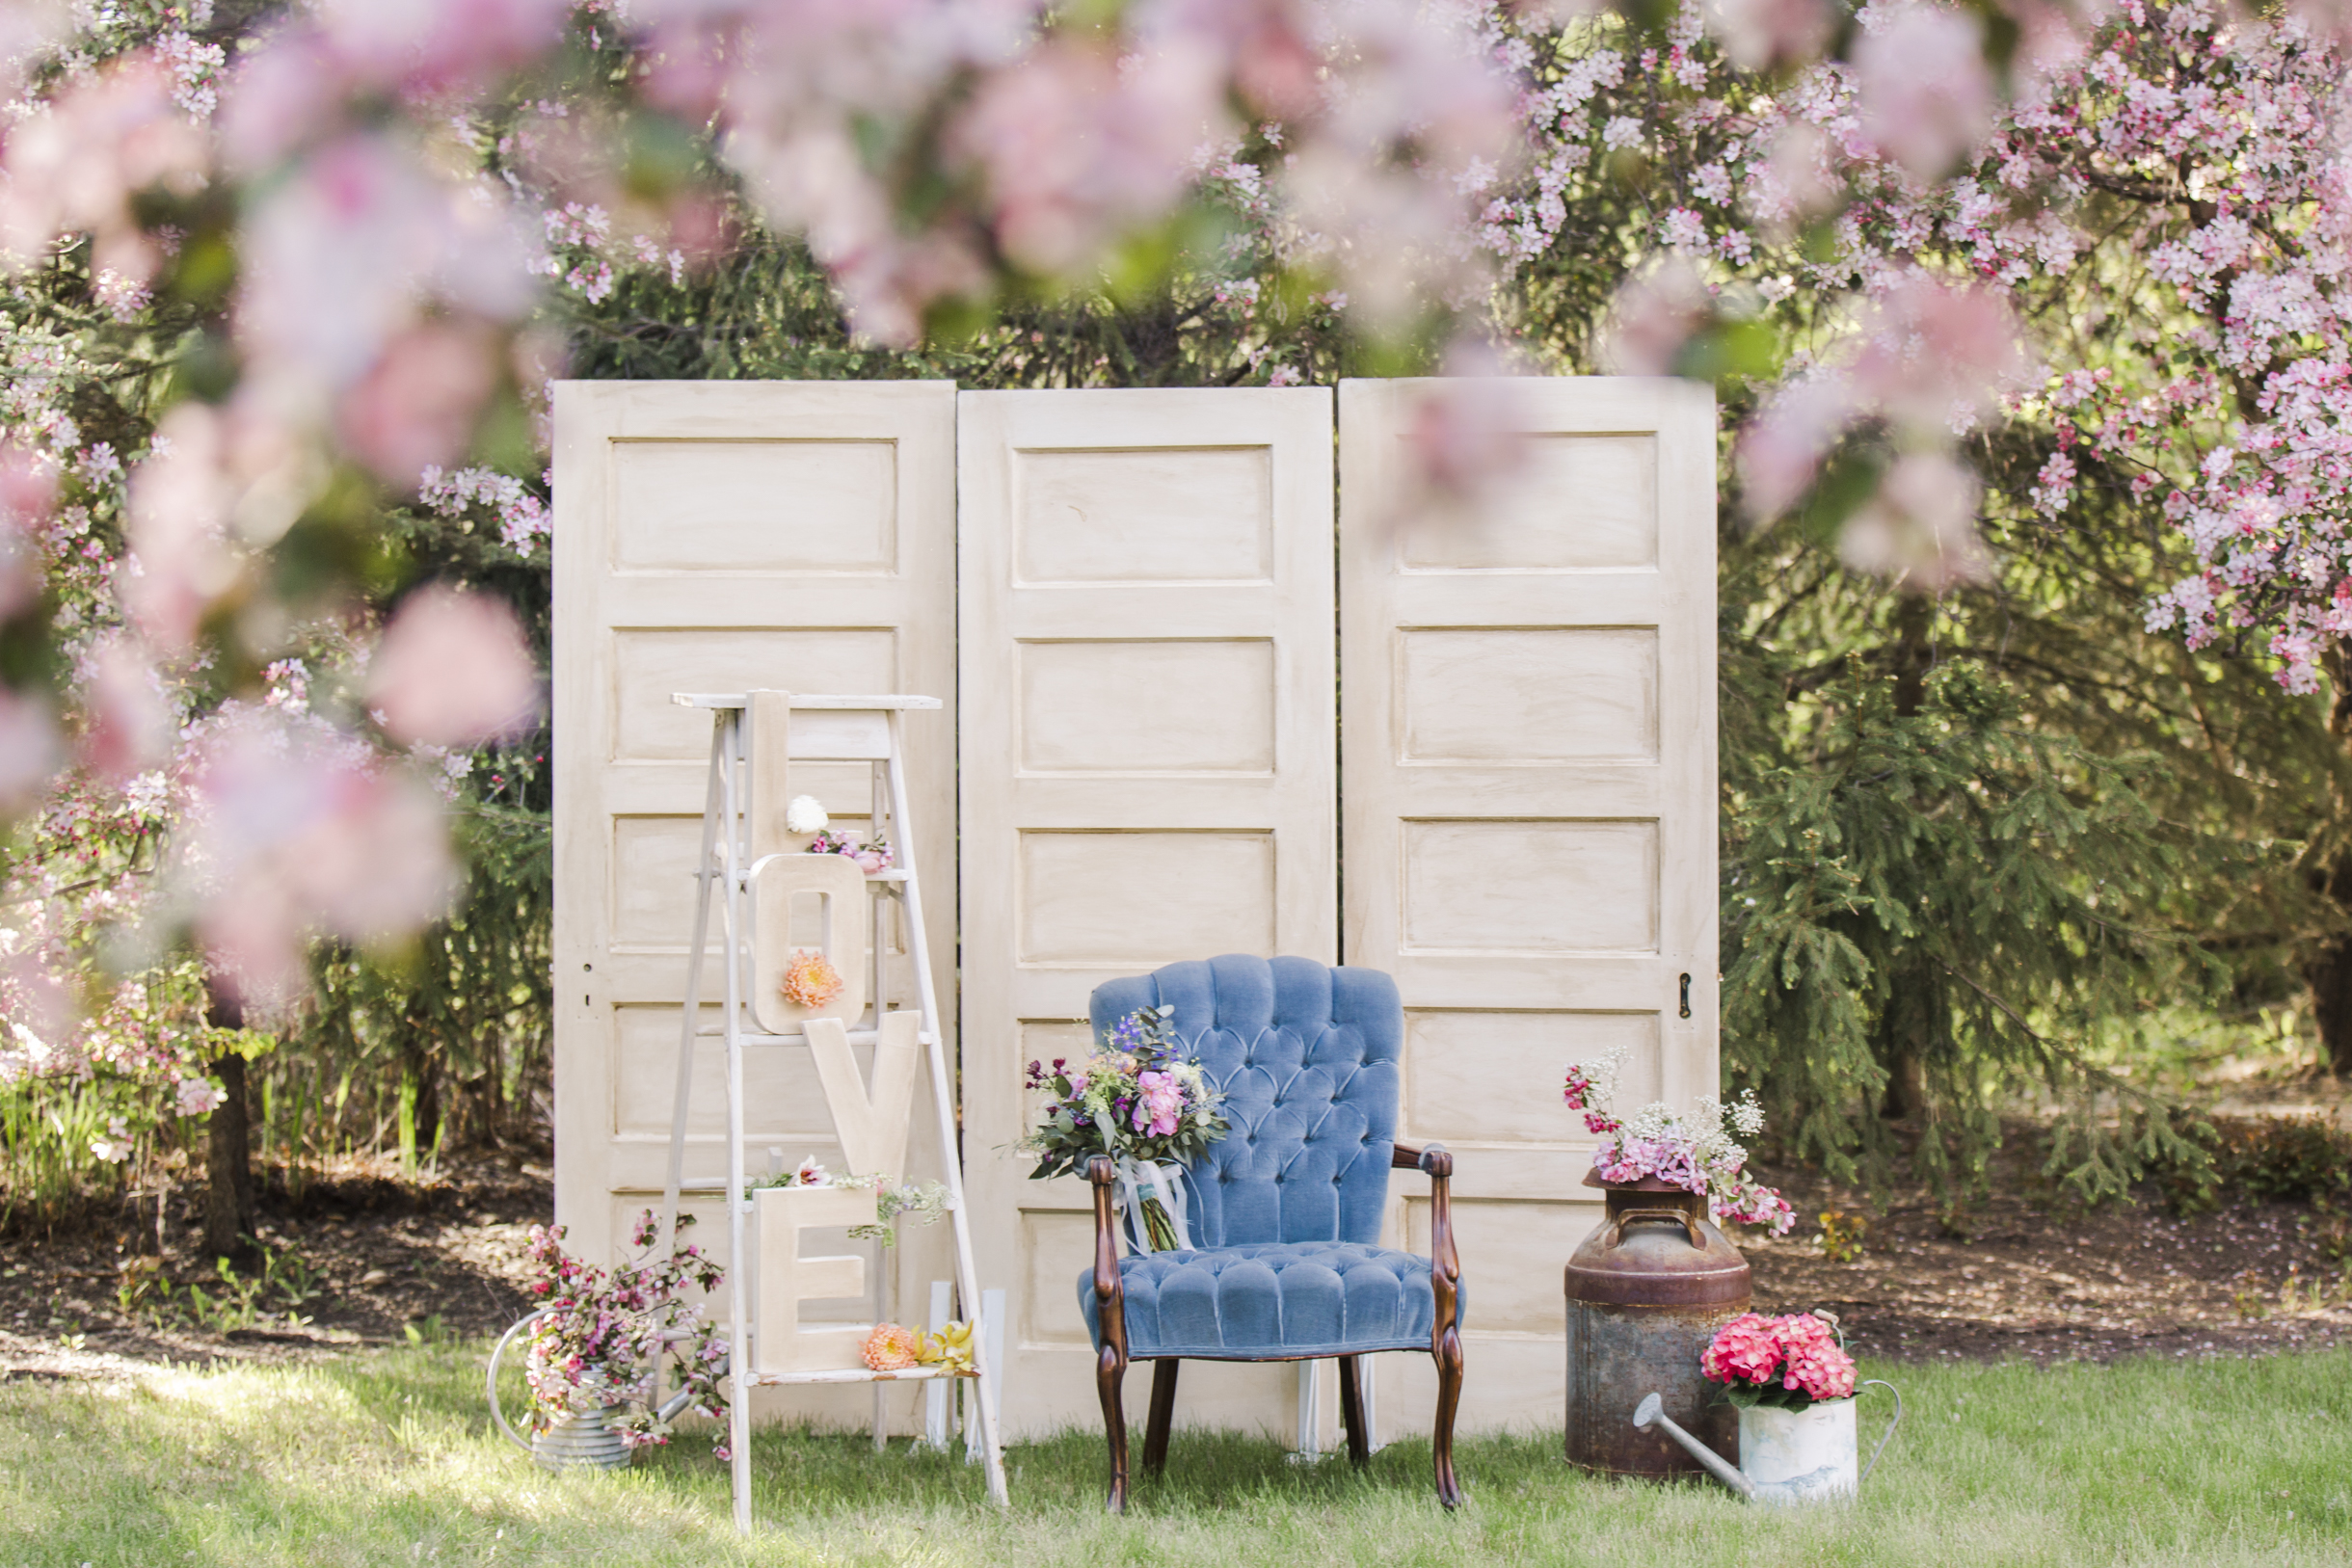 Spring Blossoms - Soft colours, abundant blooms and vintage tableware are just a few of the highlights of this romantically pretty photo shoot.View Gallery>